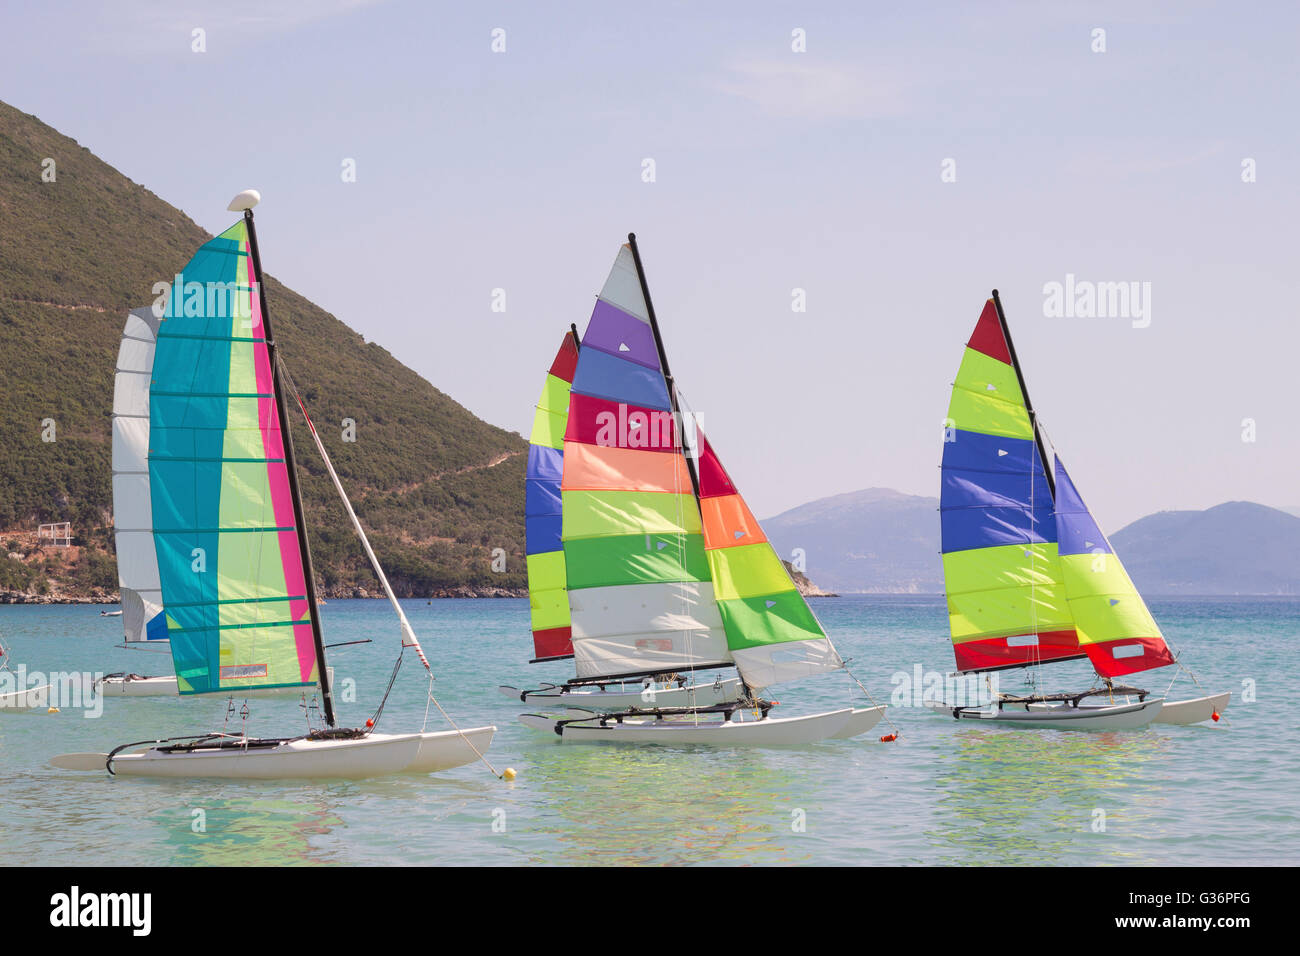 Sailboats with colorful sails - Stock Image